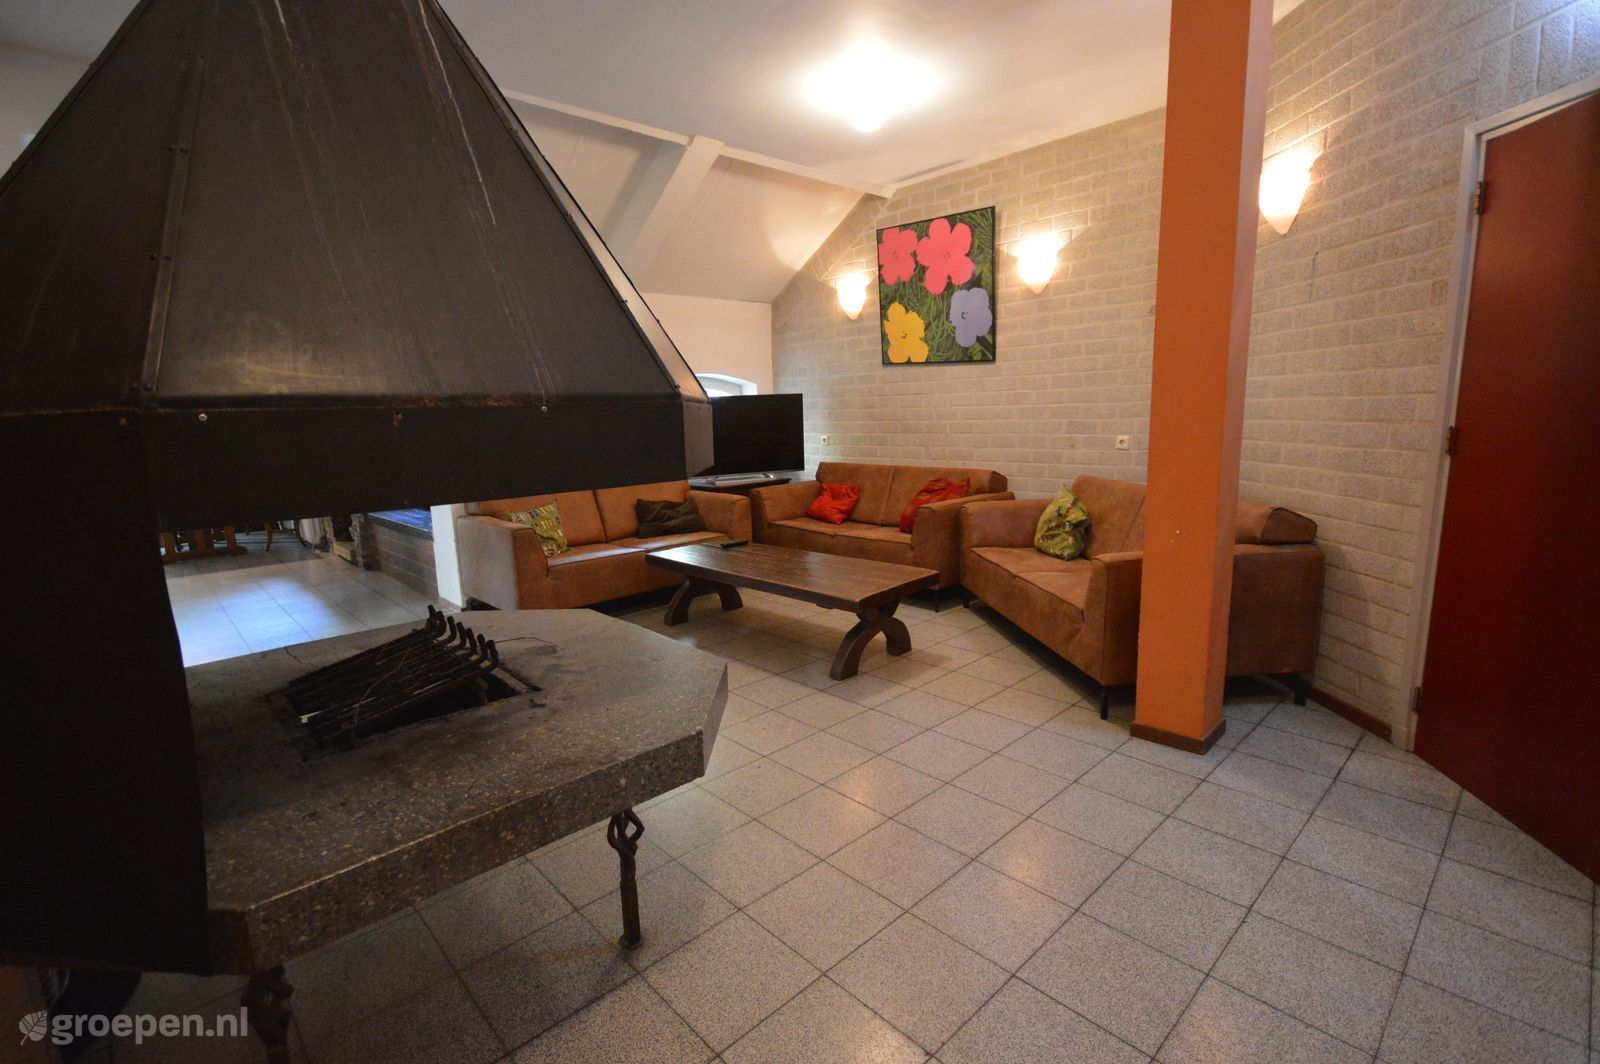 Group accommodation Ransdaal